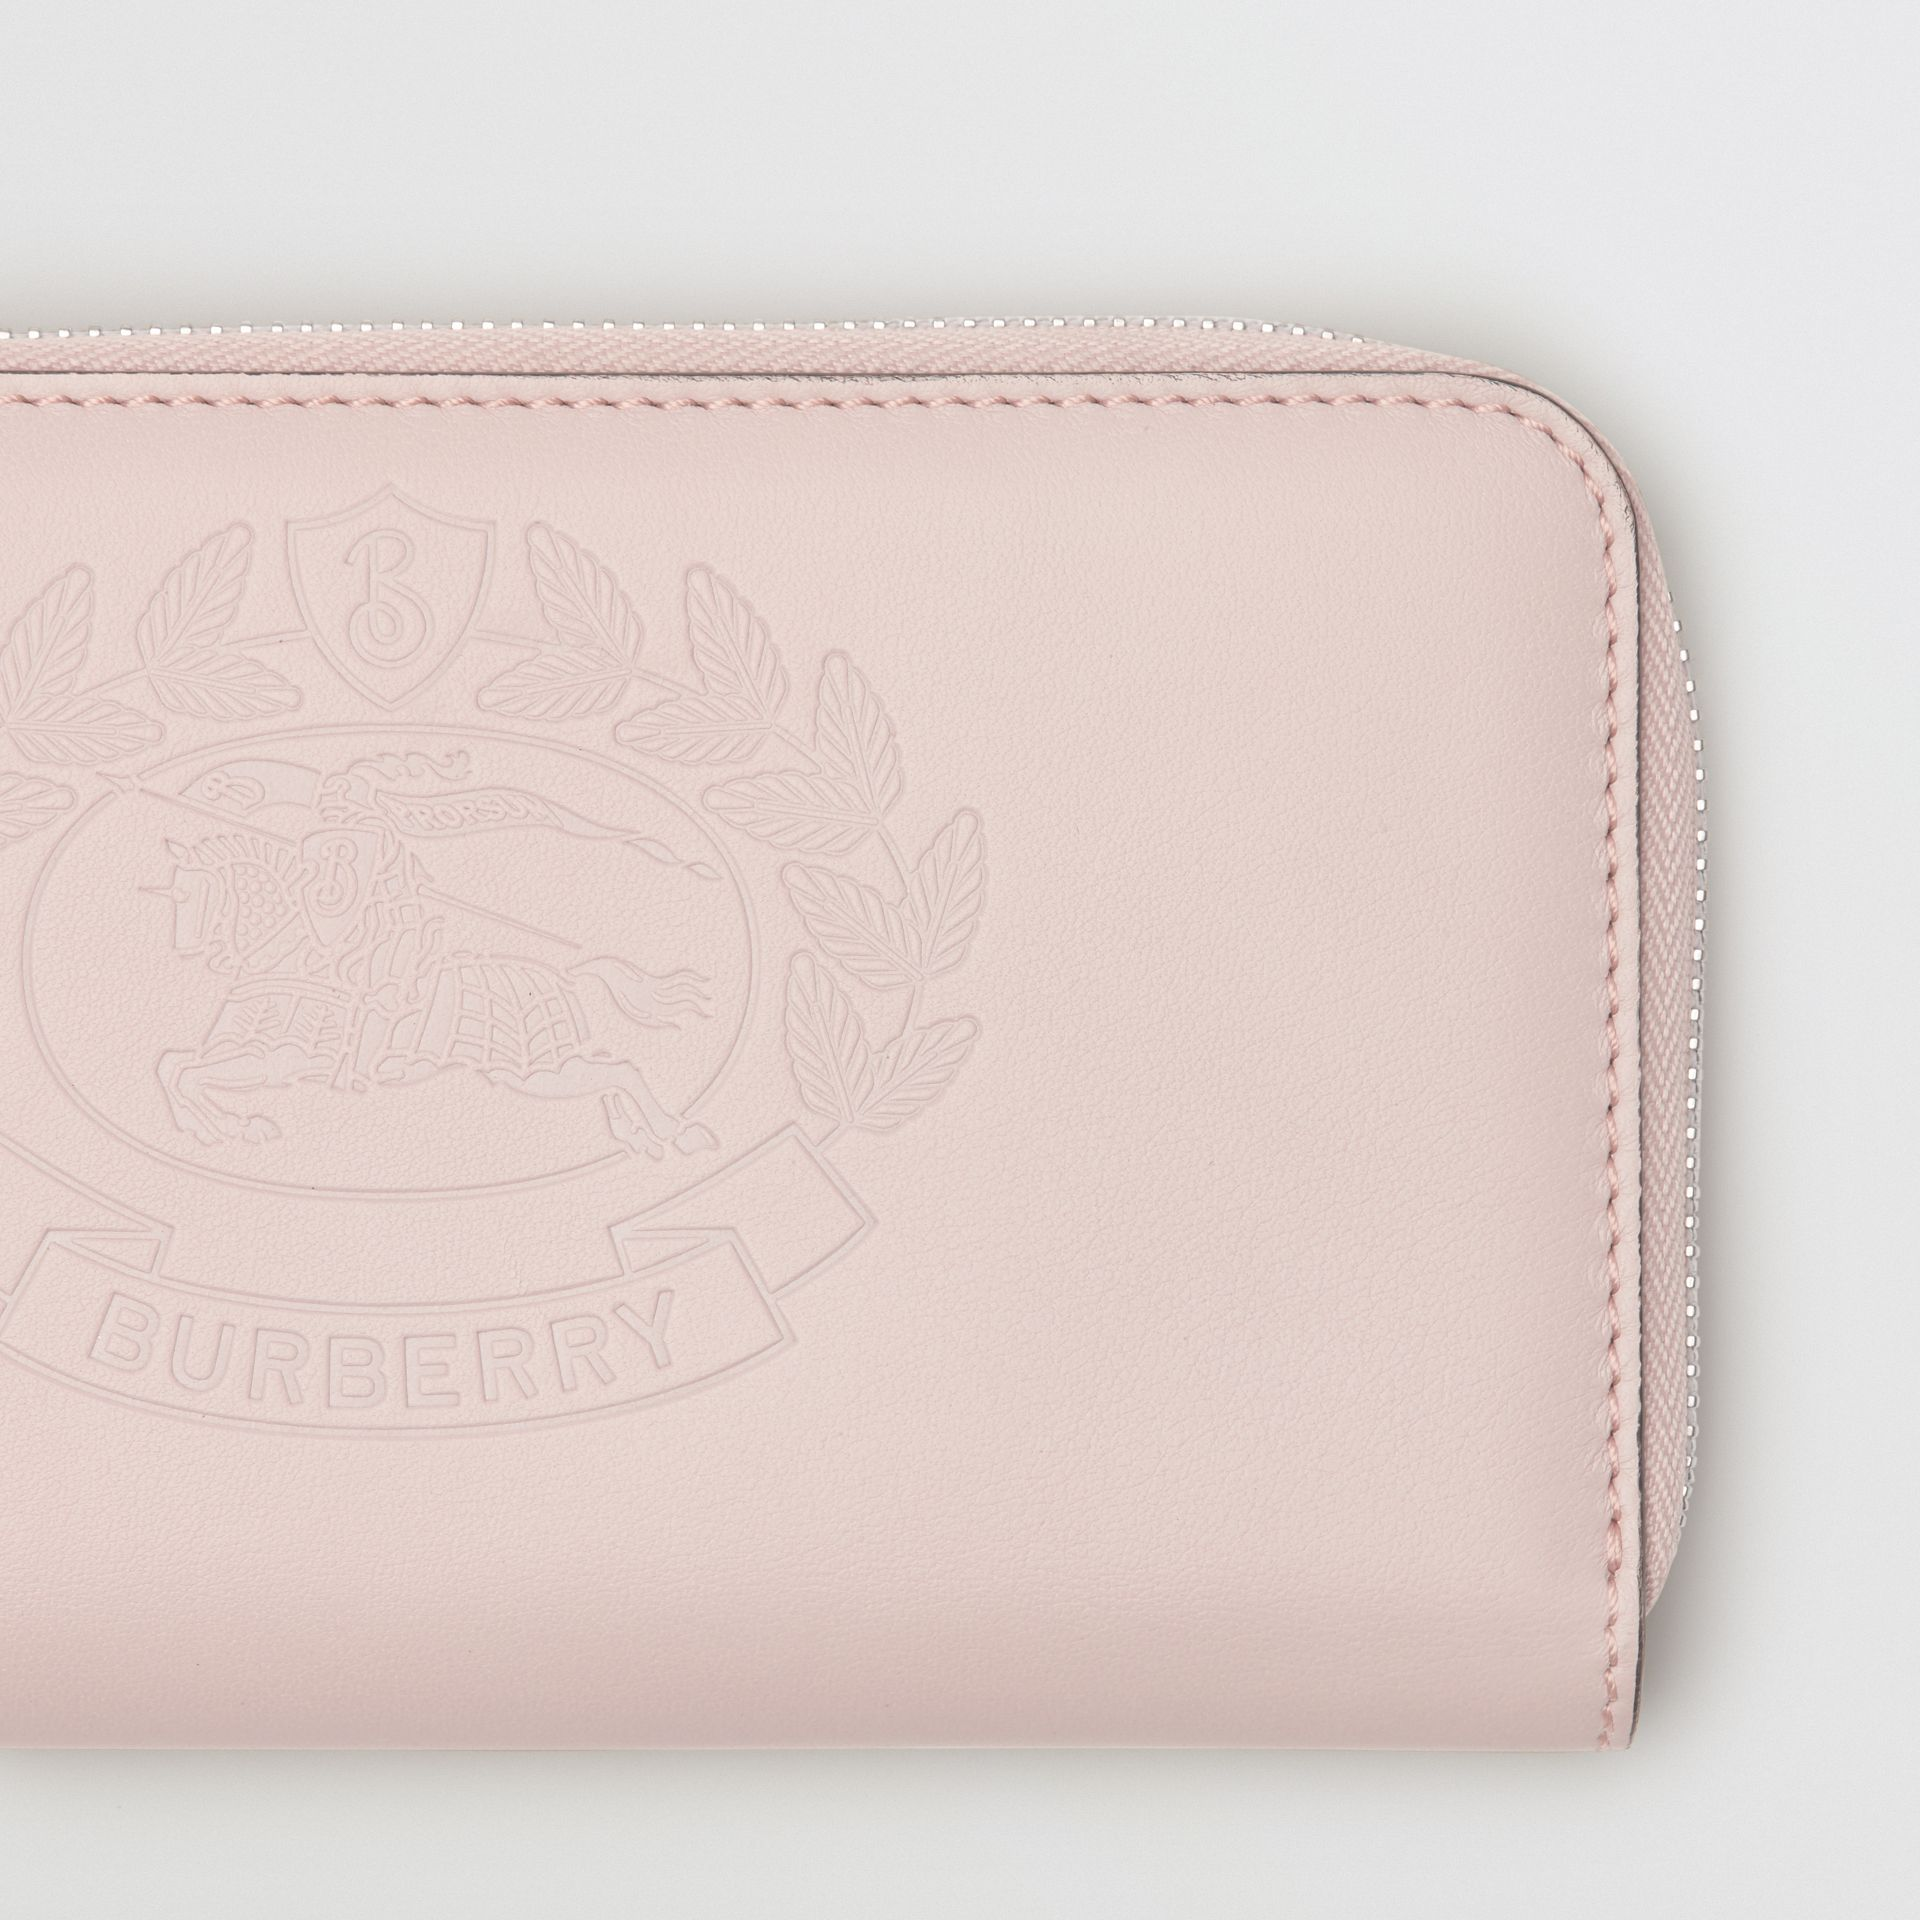 Embossed Crest Two-tone Leather Ziparound Wallet in Chalk Pink - Women | Burberry - gallery image 1